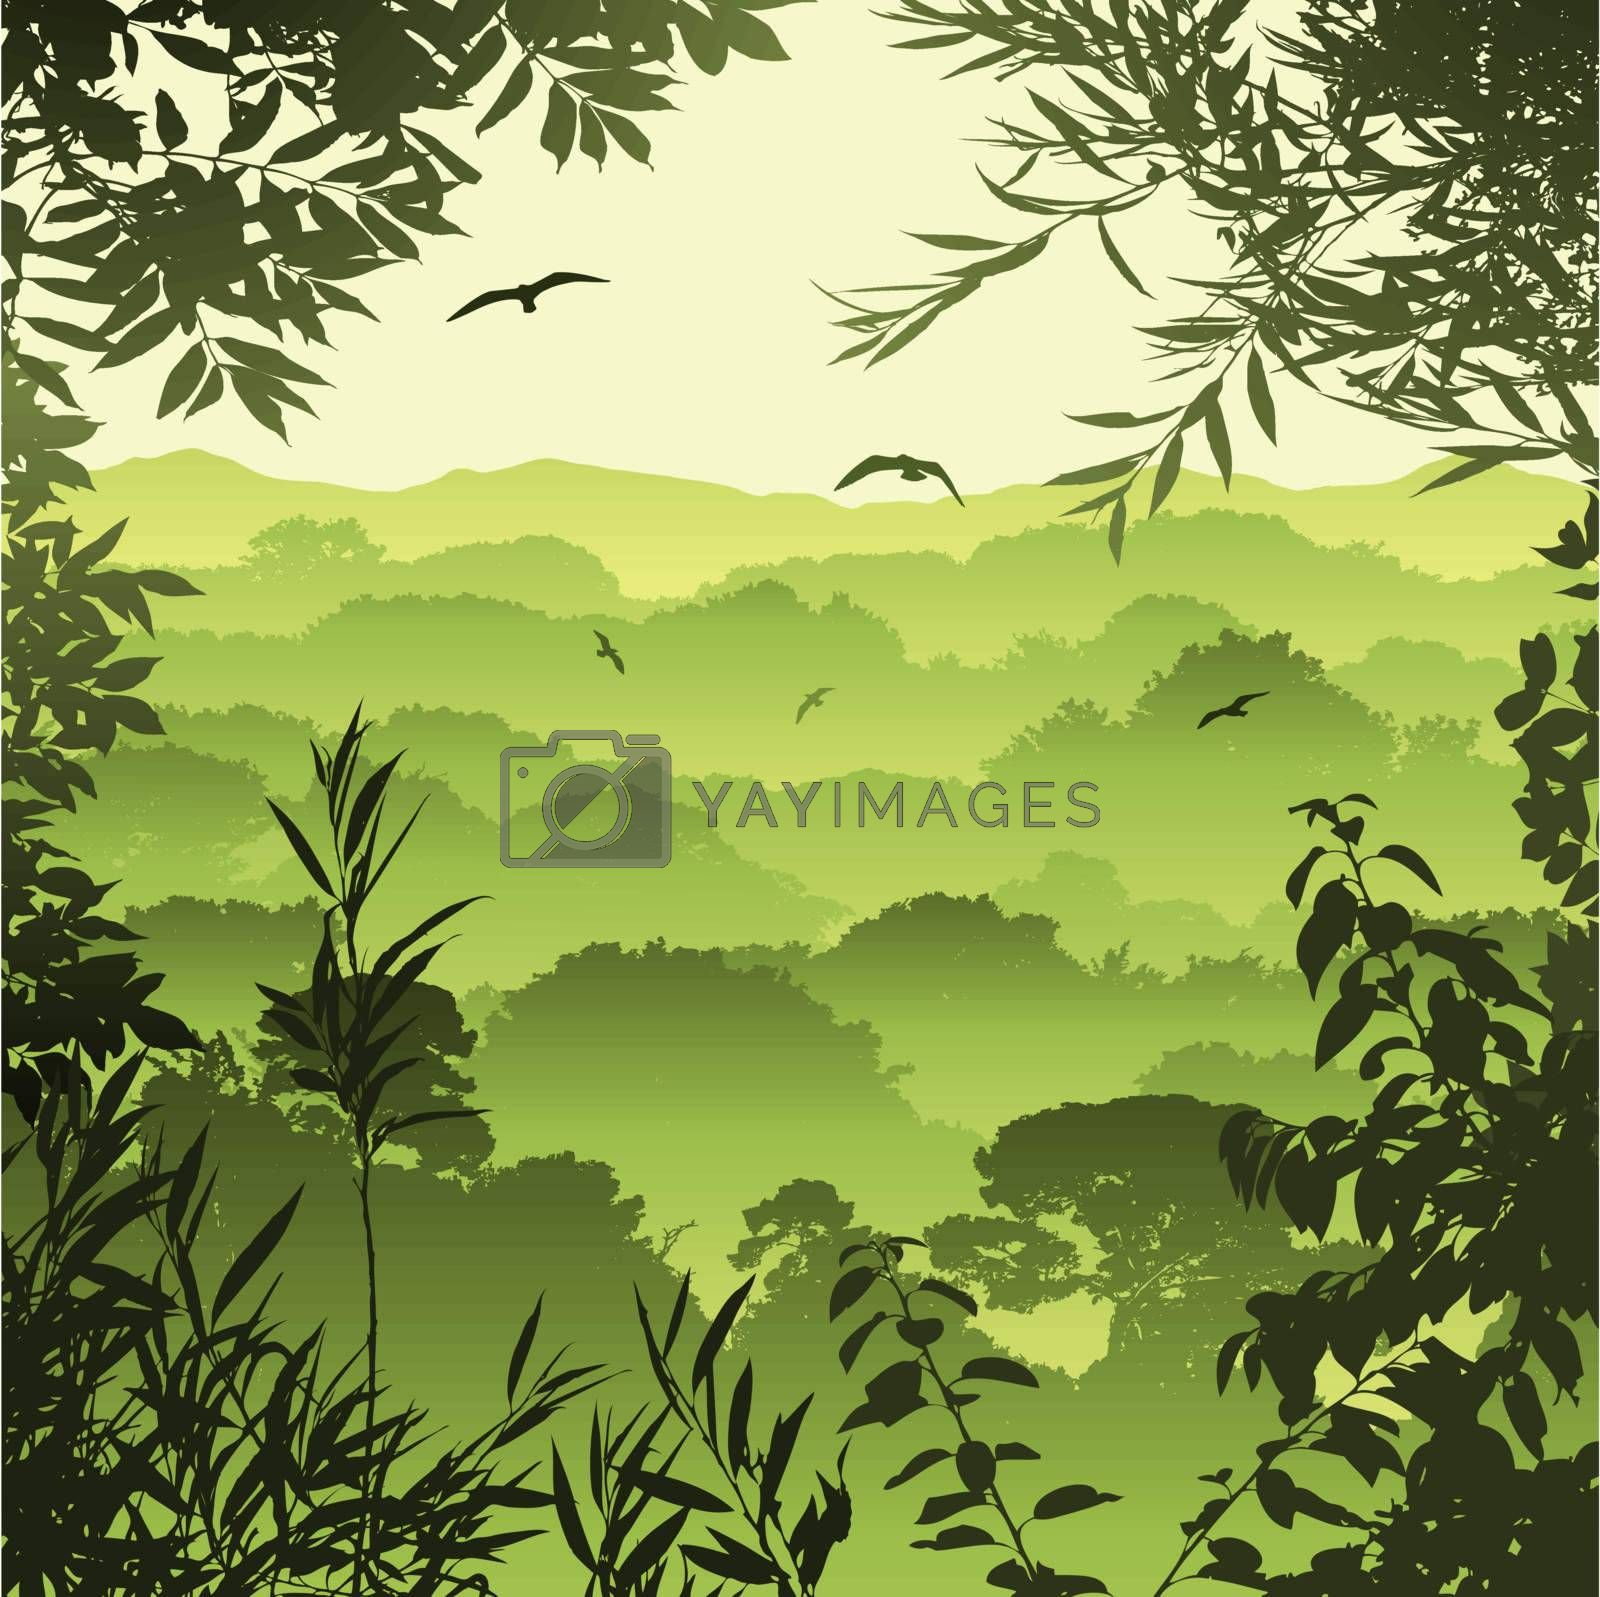 A Green Forest Landscape with Trees and Leaves